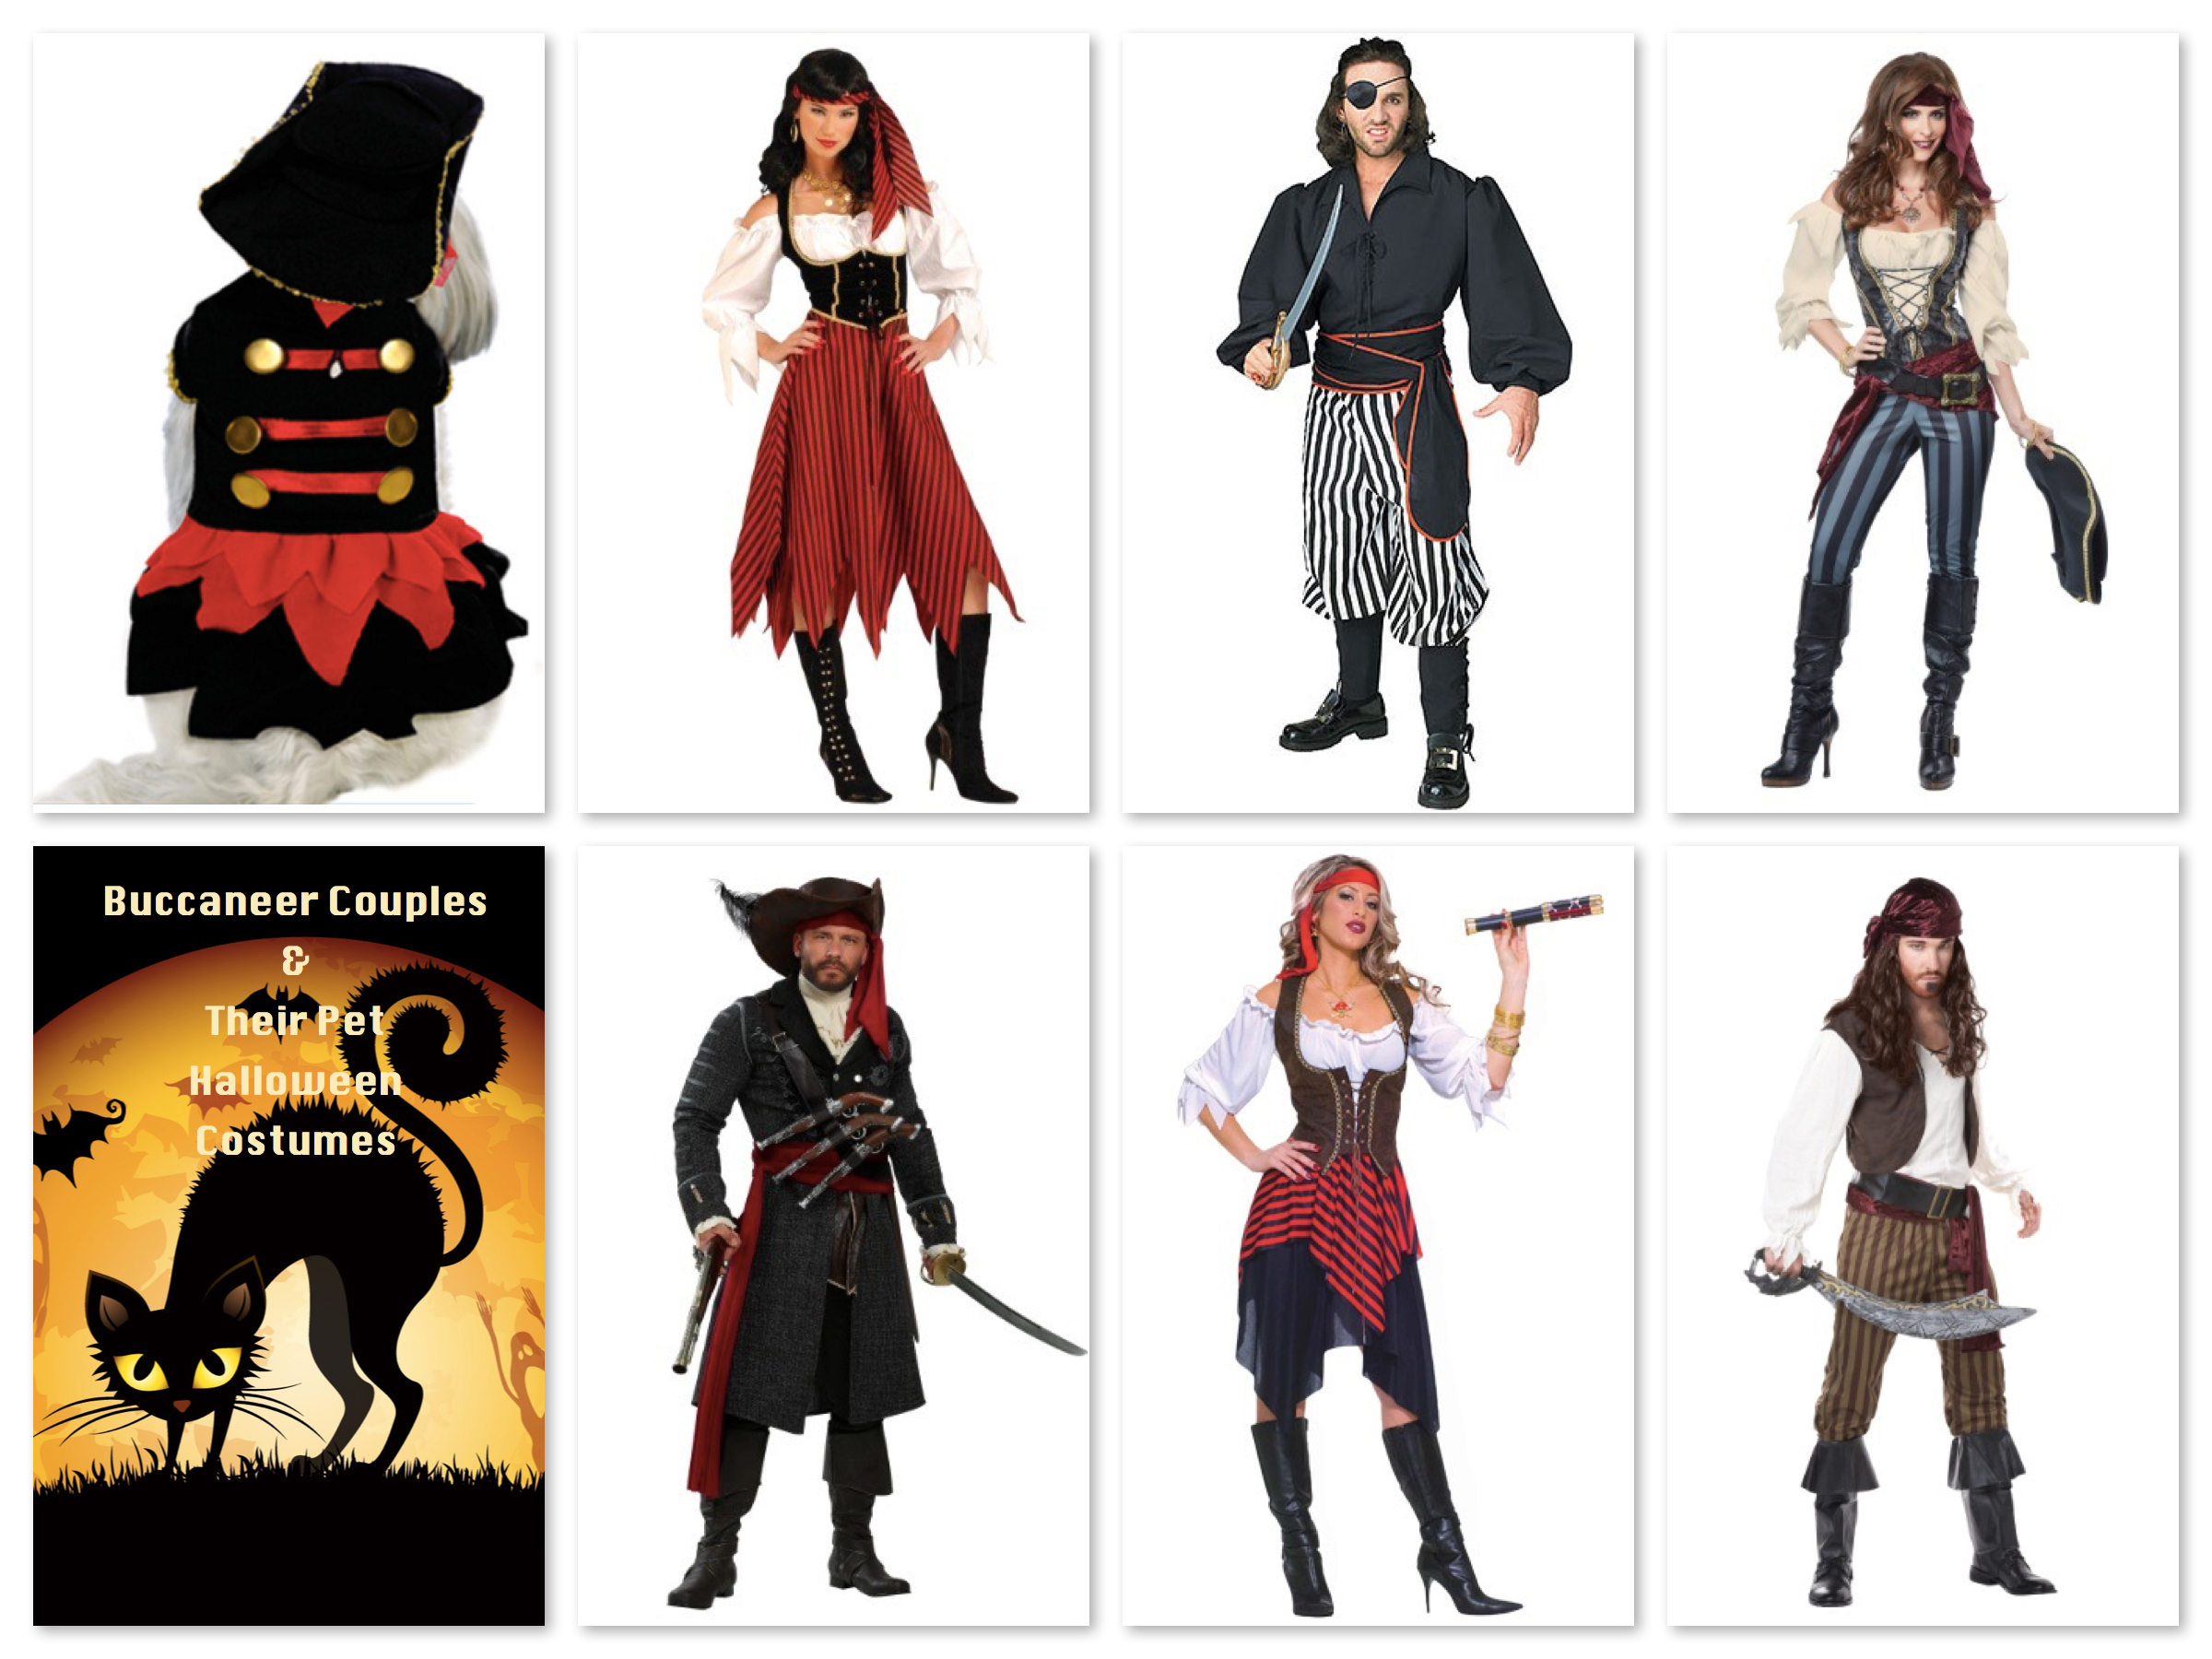 Buccaneer Couples & Their Pet Halloween Costumes, Matching Couples & Their Dog Costumes